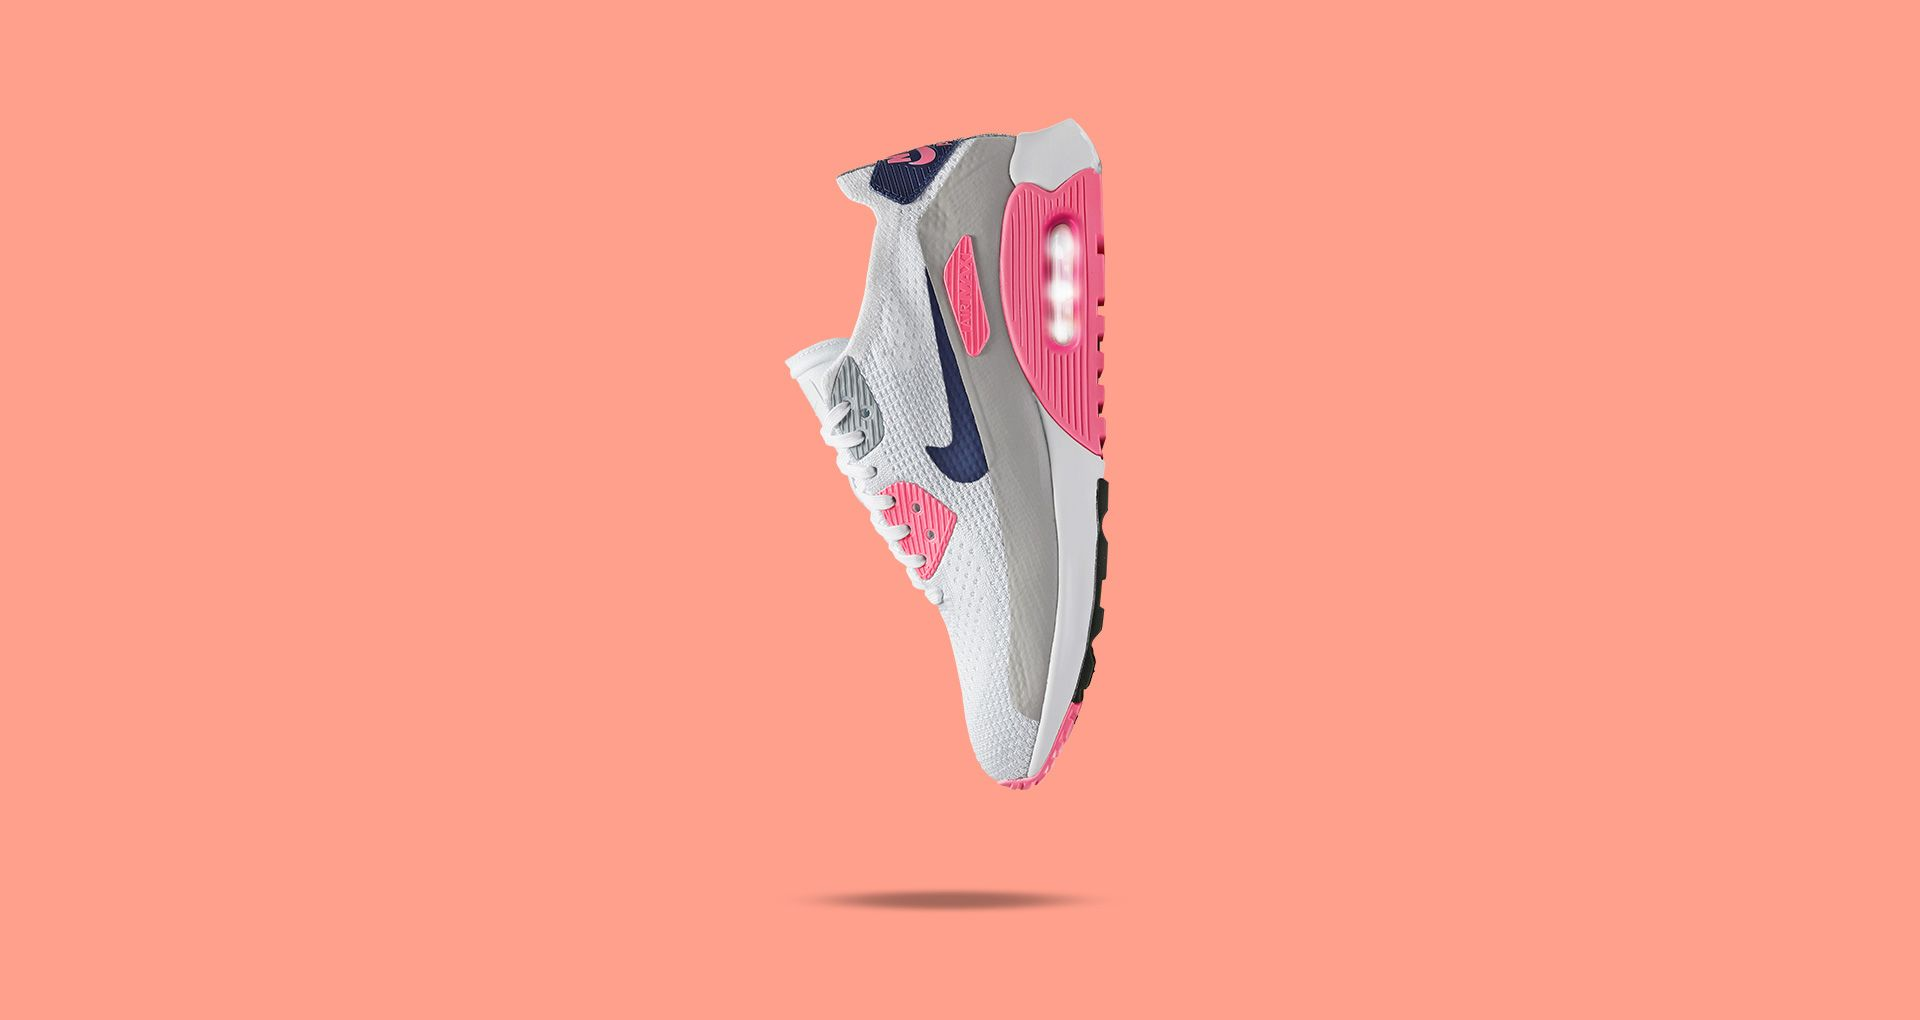 buy online 59918 fa9e4 Women's Nike Air Max 90 Ultra 2.0 Flyknit 'White & Laser ...